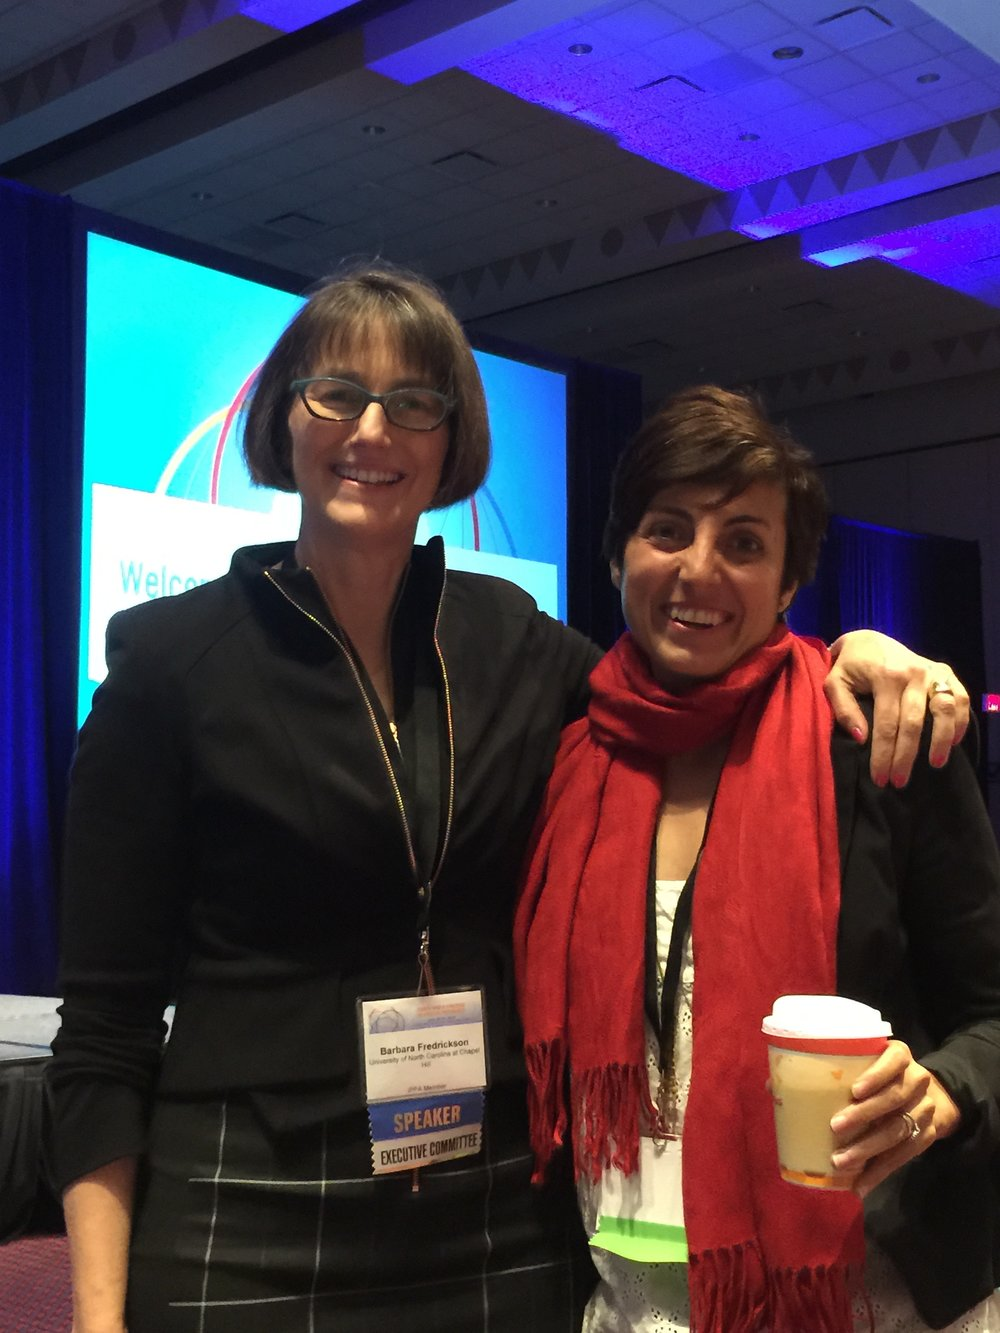 Barbara Fredickson, researcher on happiness and author and Silvia Garcia